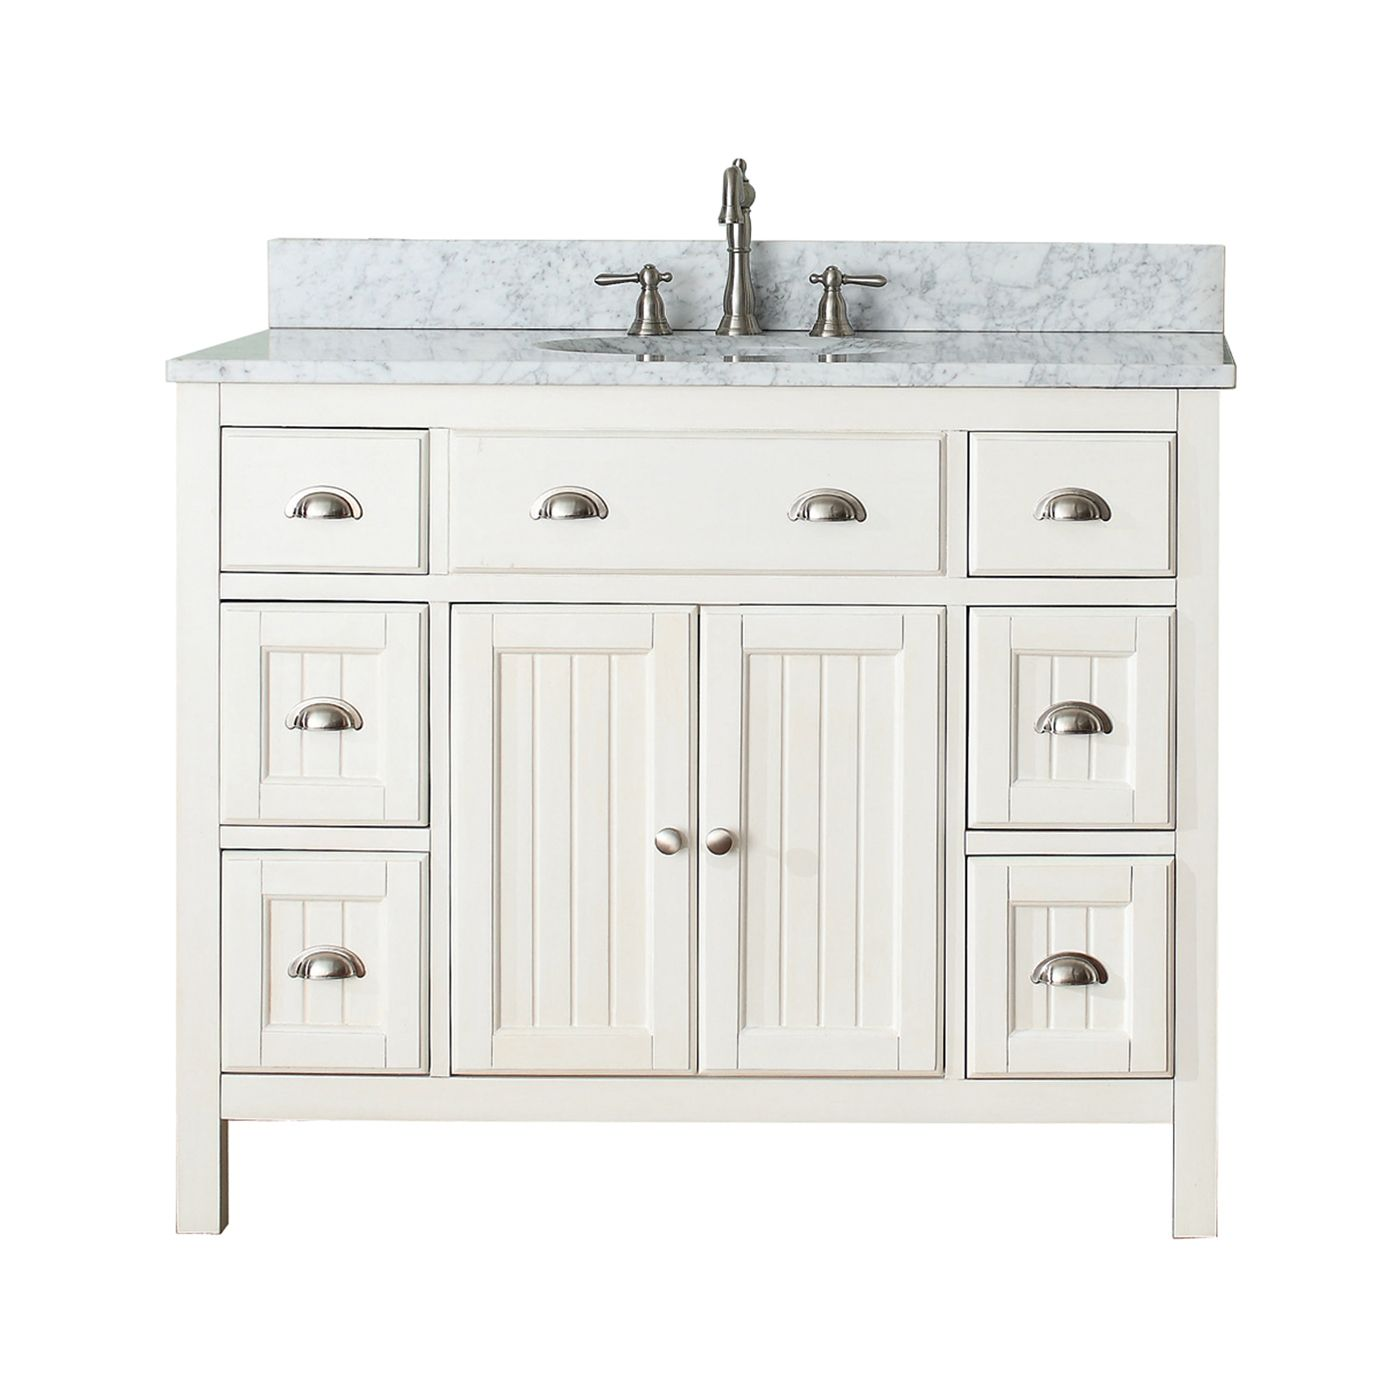 Avanity Hamilton Vs42 Fw Hamilton 42 In Bathroom Vanity Combo Vanity Combos Single Bathroom Vanity 42 Inch Vanity